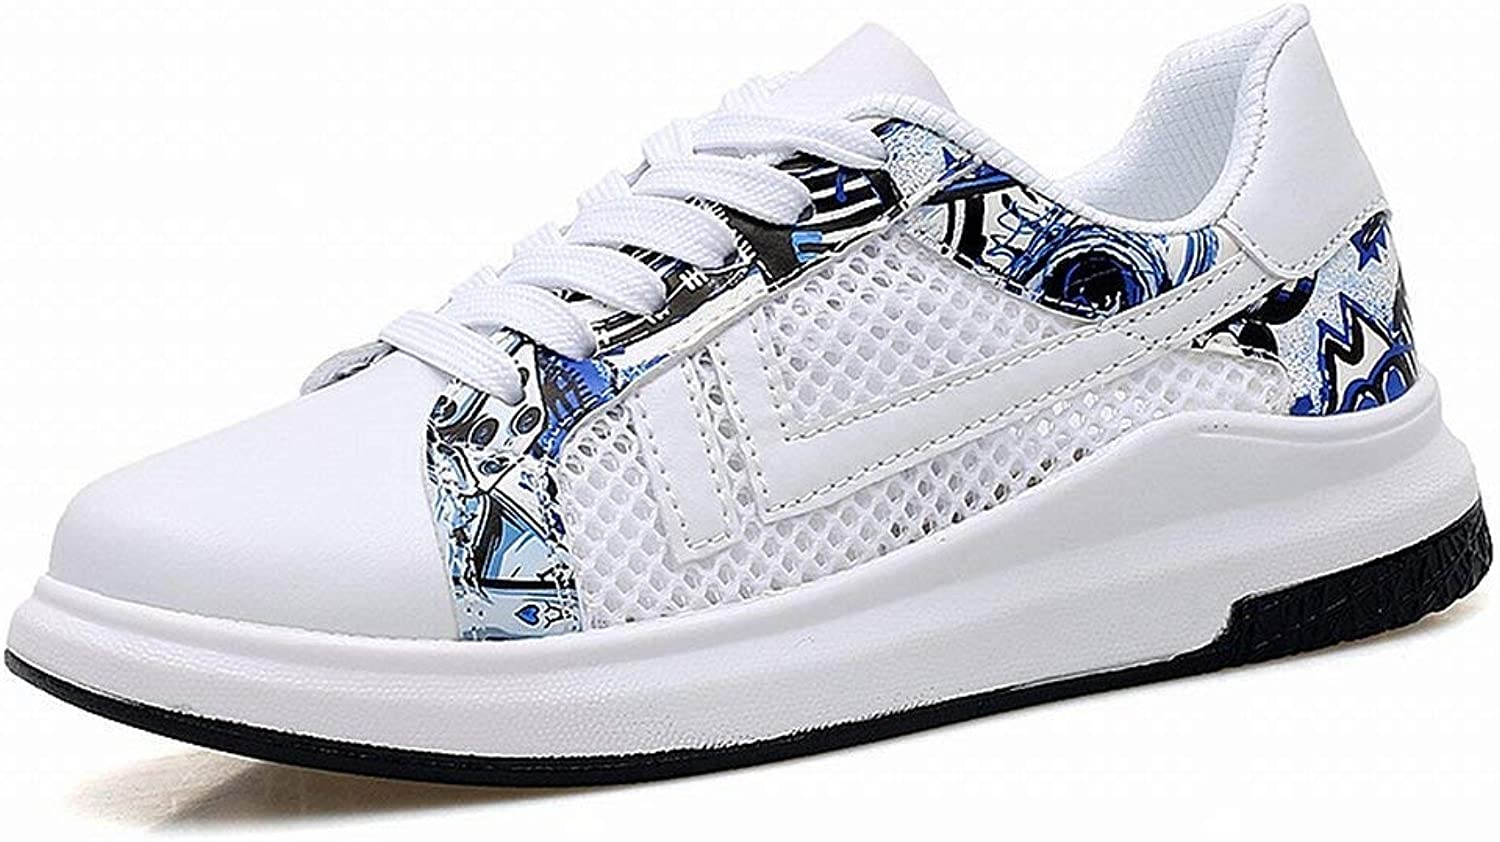 Hhgold Fashion Trend Sport shoes Classic All-Match Couple shoes Comfortable Breathable Casual shoes (color   White bluee, Size   43)